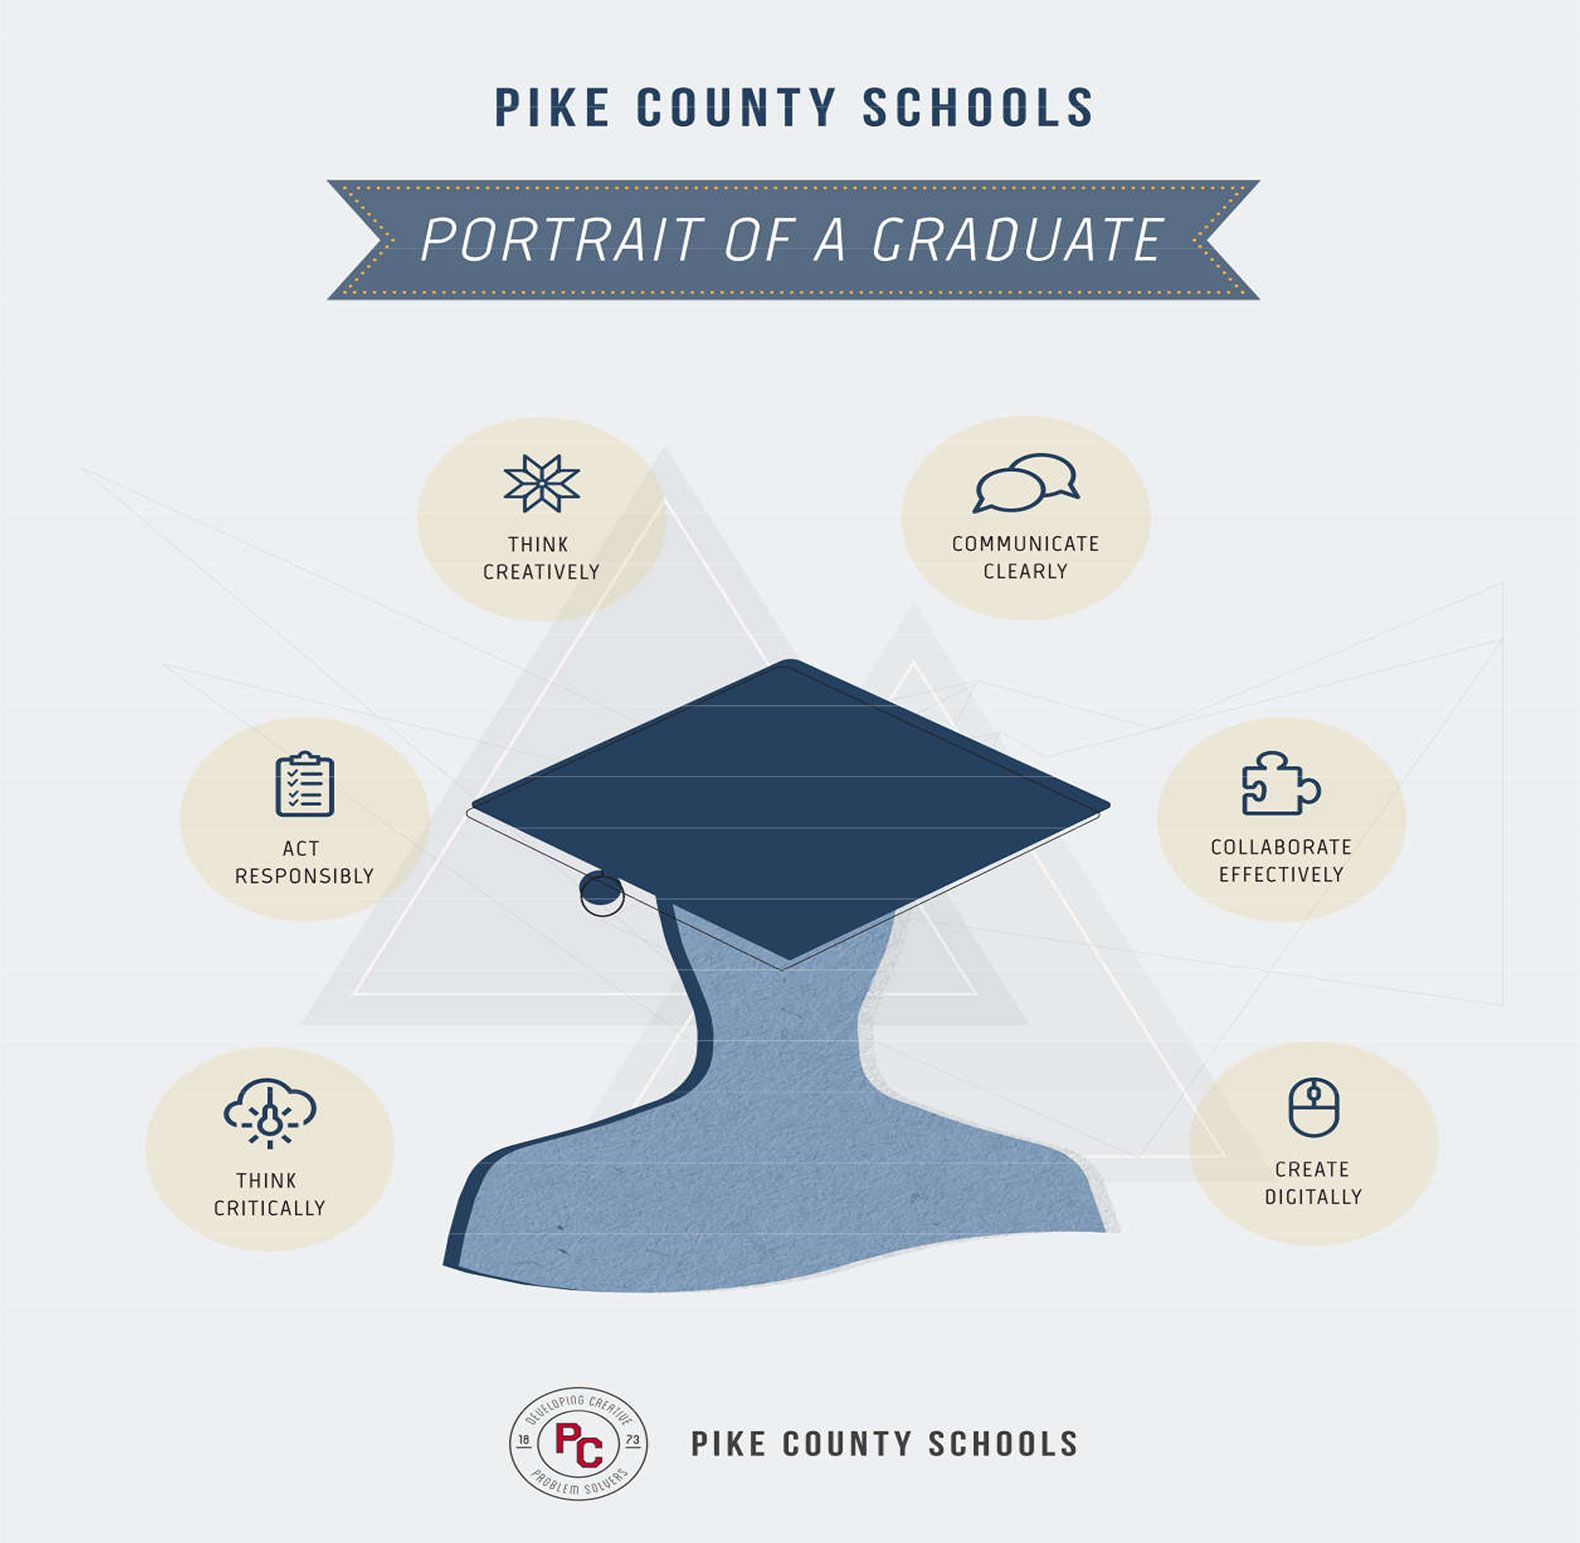 Graduate profile from Pike County Schools in Georgia